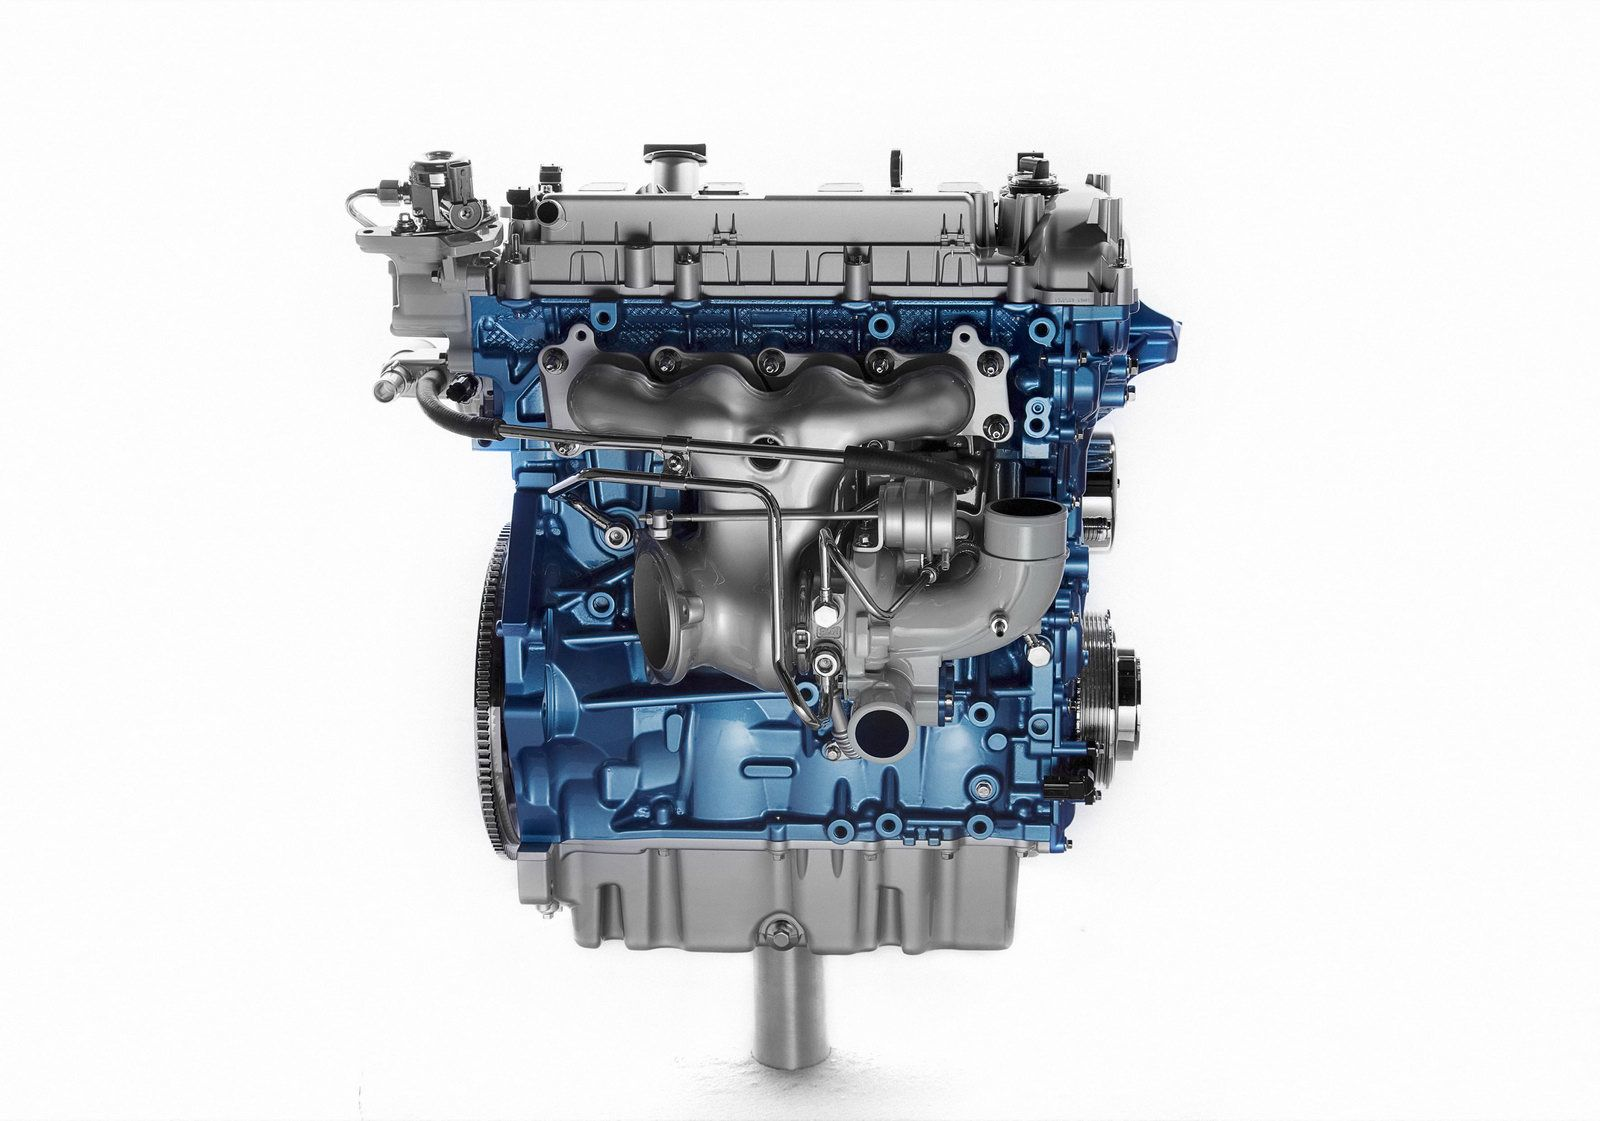 2.0 L Ecoboost >> Ford Ecoboost Engine Family Includes 1 0l Three Cylinder Engine